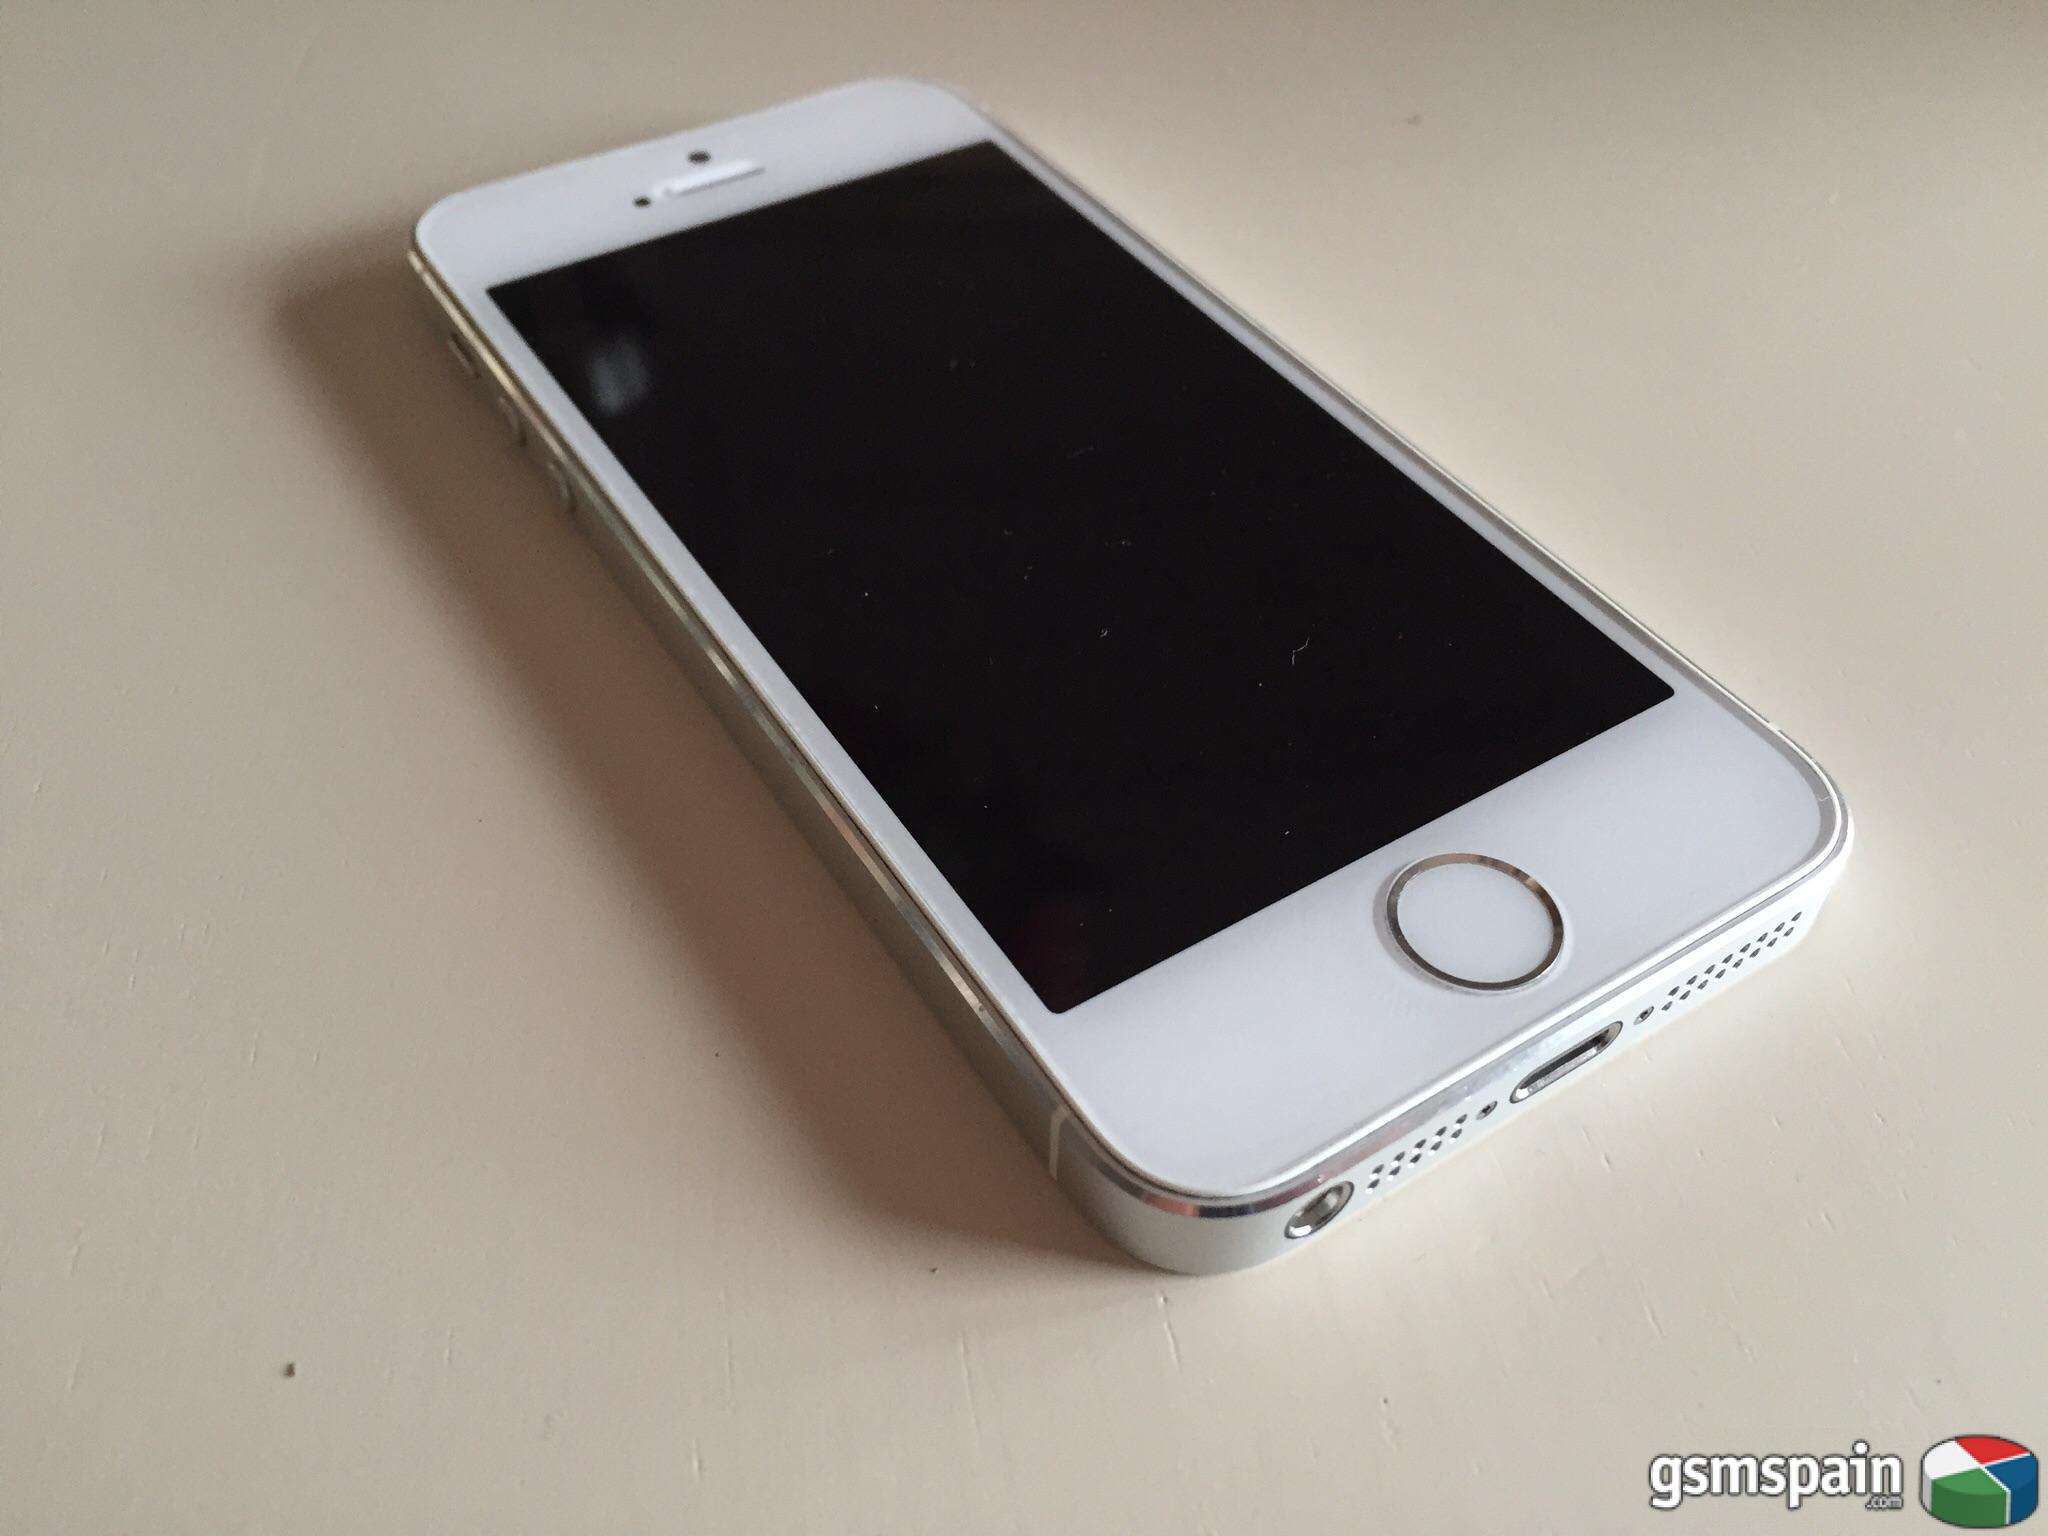 Venta De Moviles Libres Iphone Vendo Iphone 5s 16 Gb Libre De Origen Blanco Plata